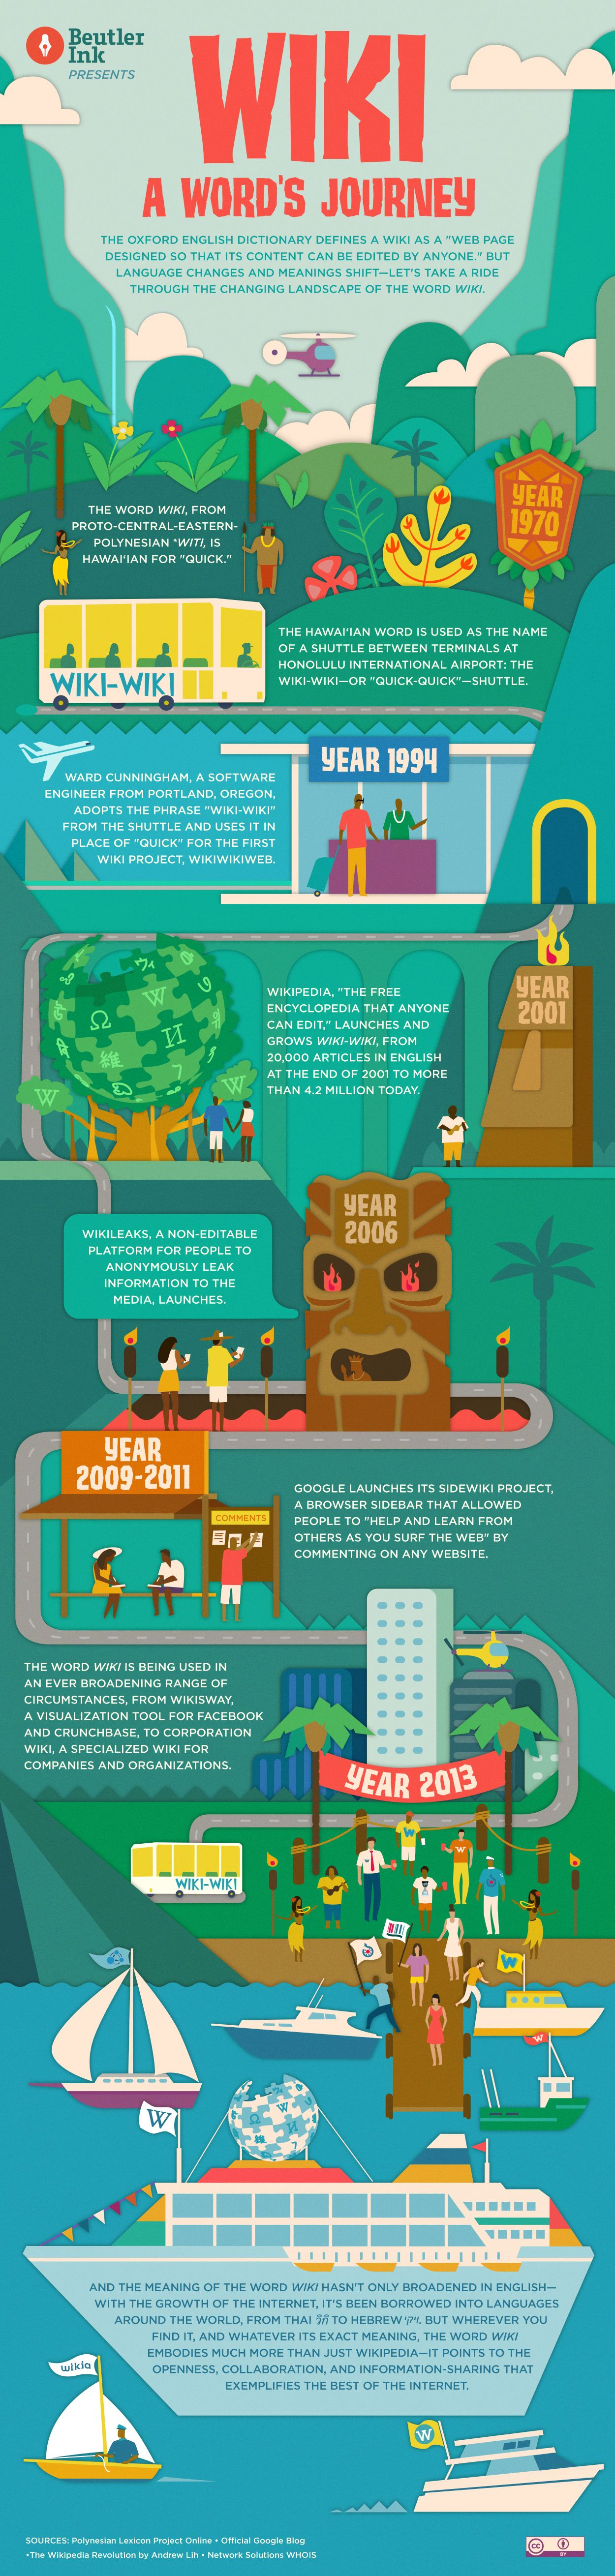 The Wiki Journey Infographic E Learning Infographics Educational Infographic Infographic Elearning